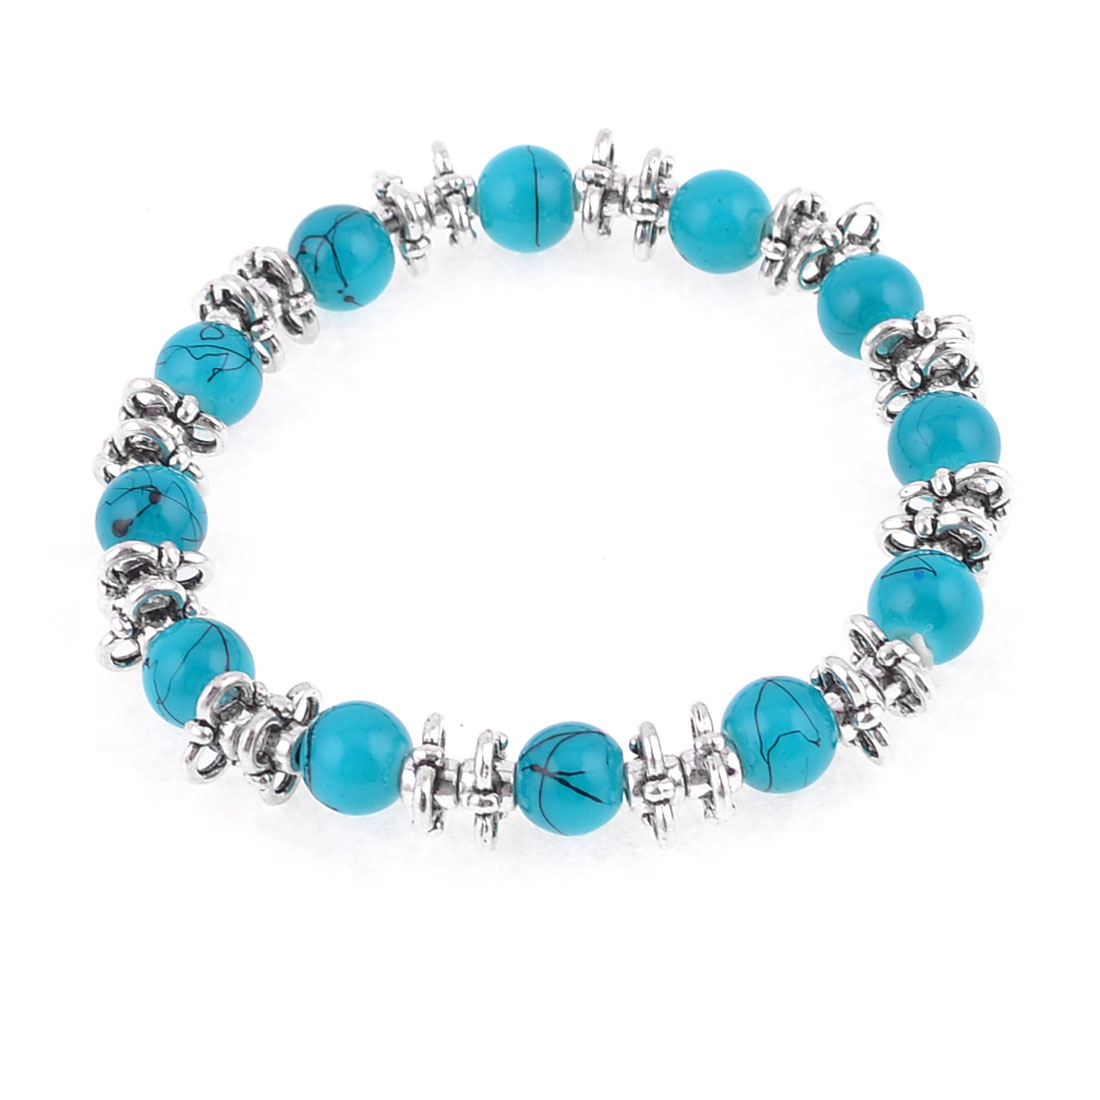 Turquoise Round Plastic Beads Bunch Elasticated Bracelet Wrist Decor for Ladies